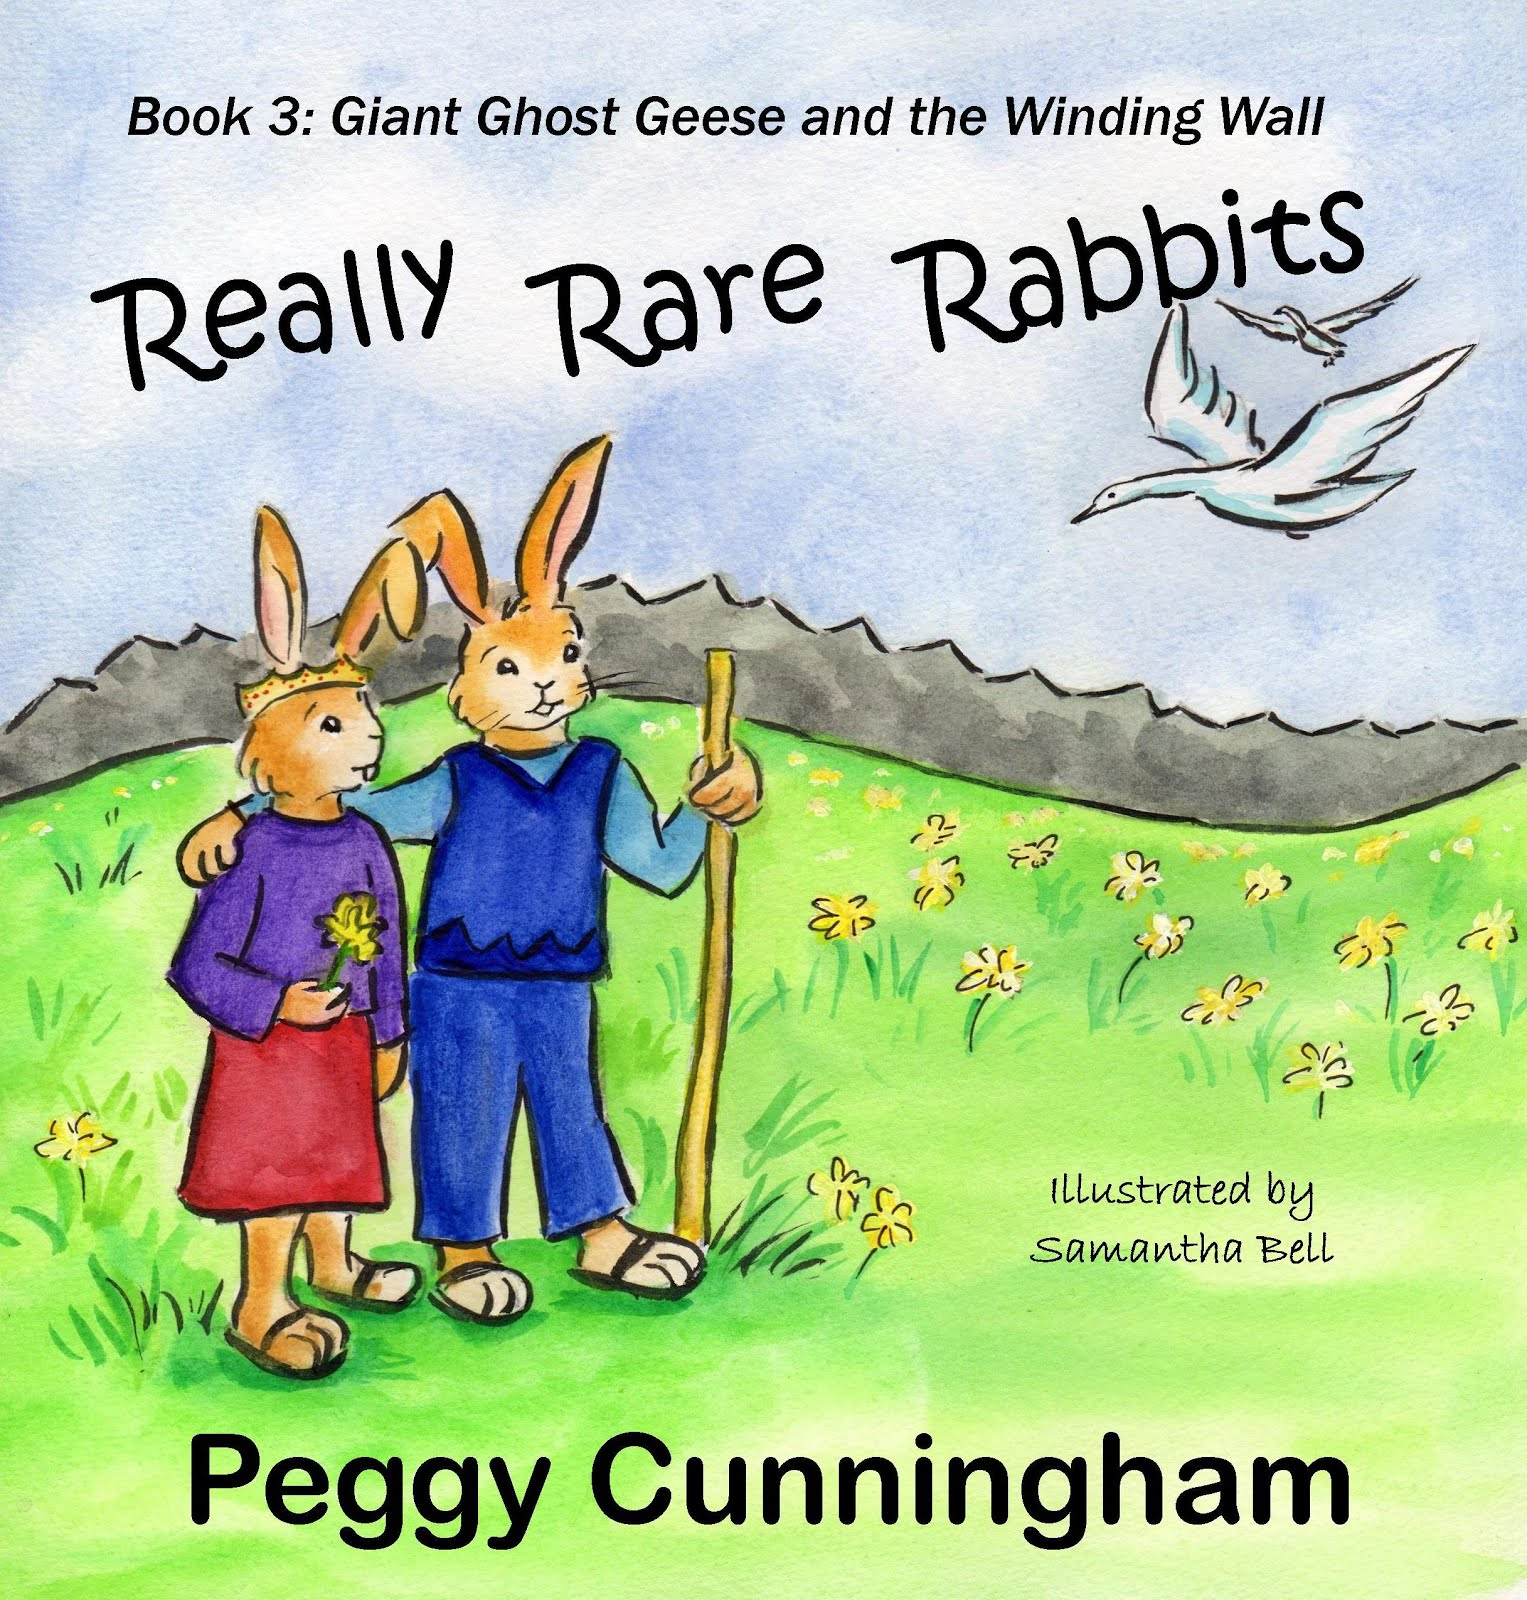 Really Rare Rabbits: Book 3